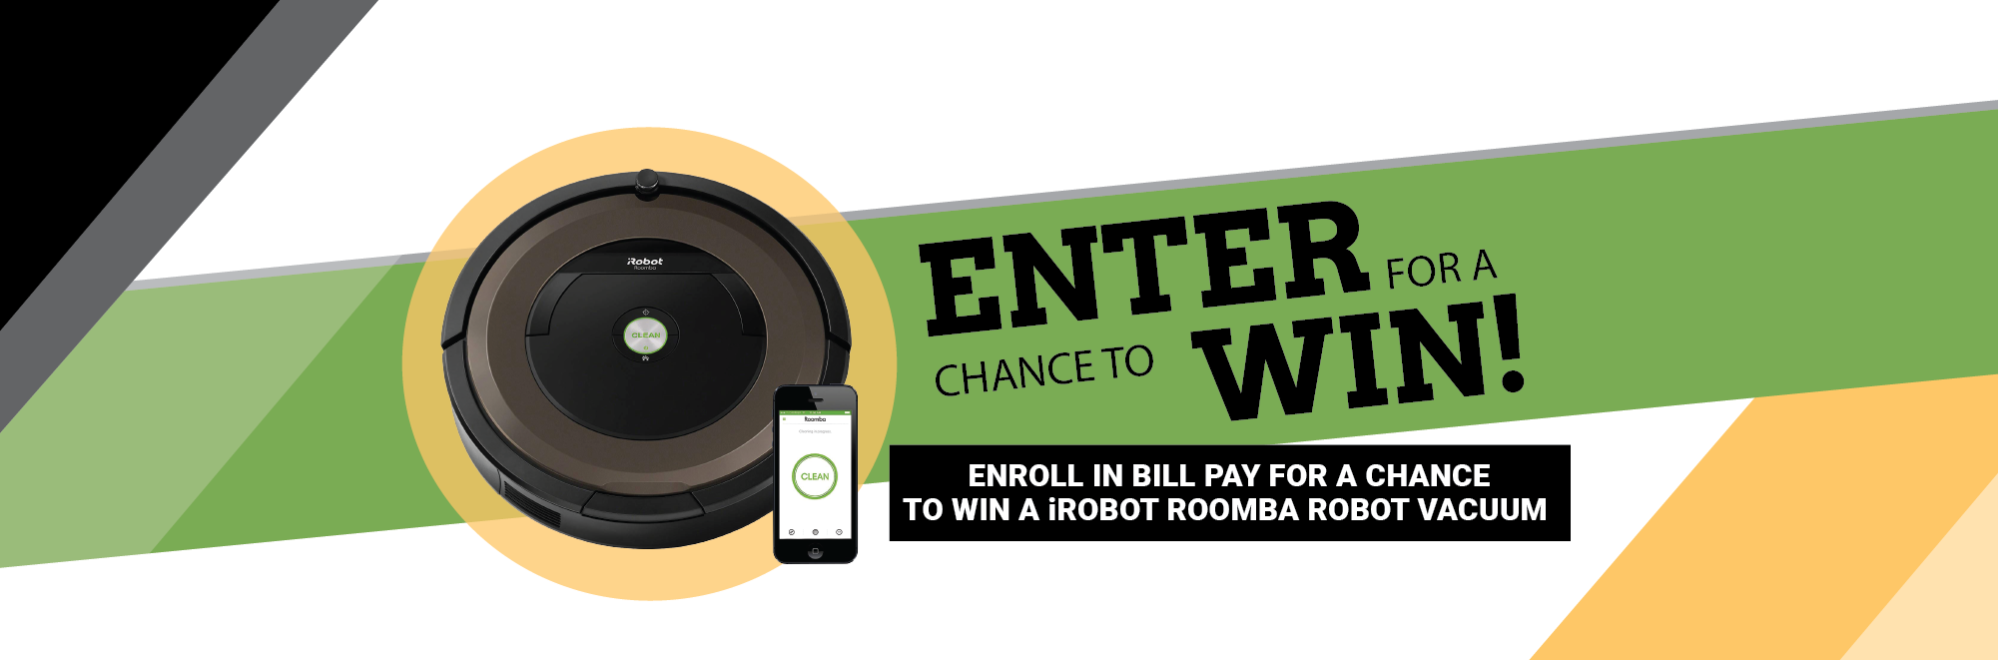 Image Enter for a chance to win by enrolling in Bill Pay with SACFCU.